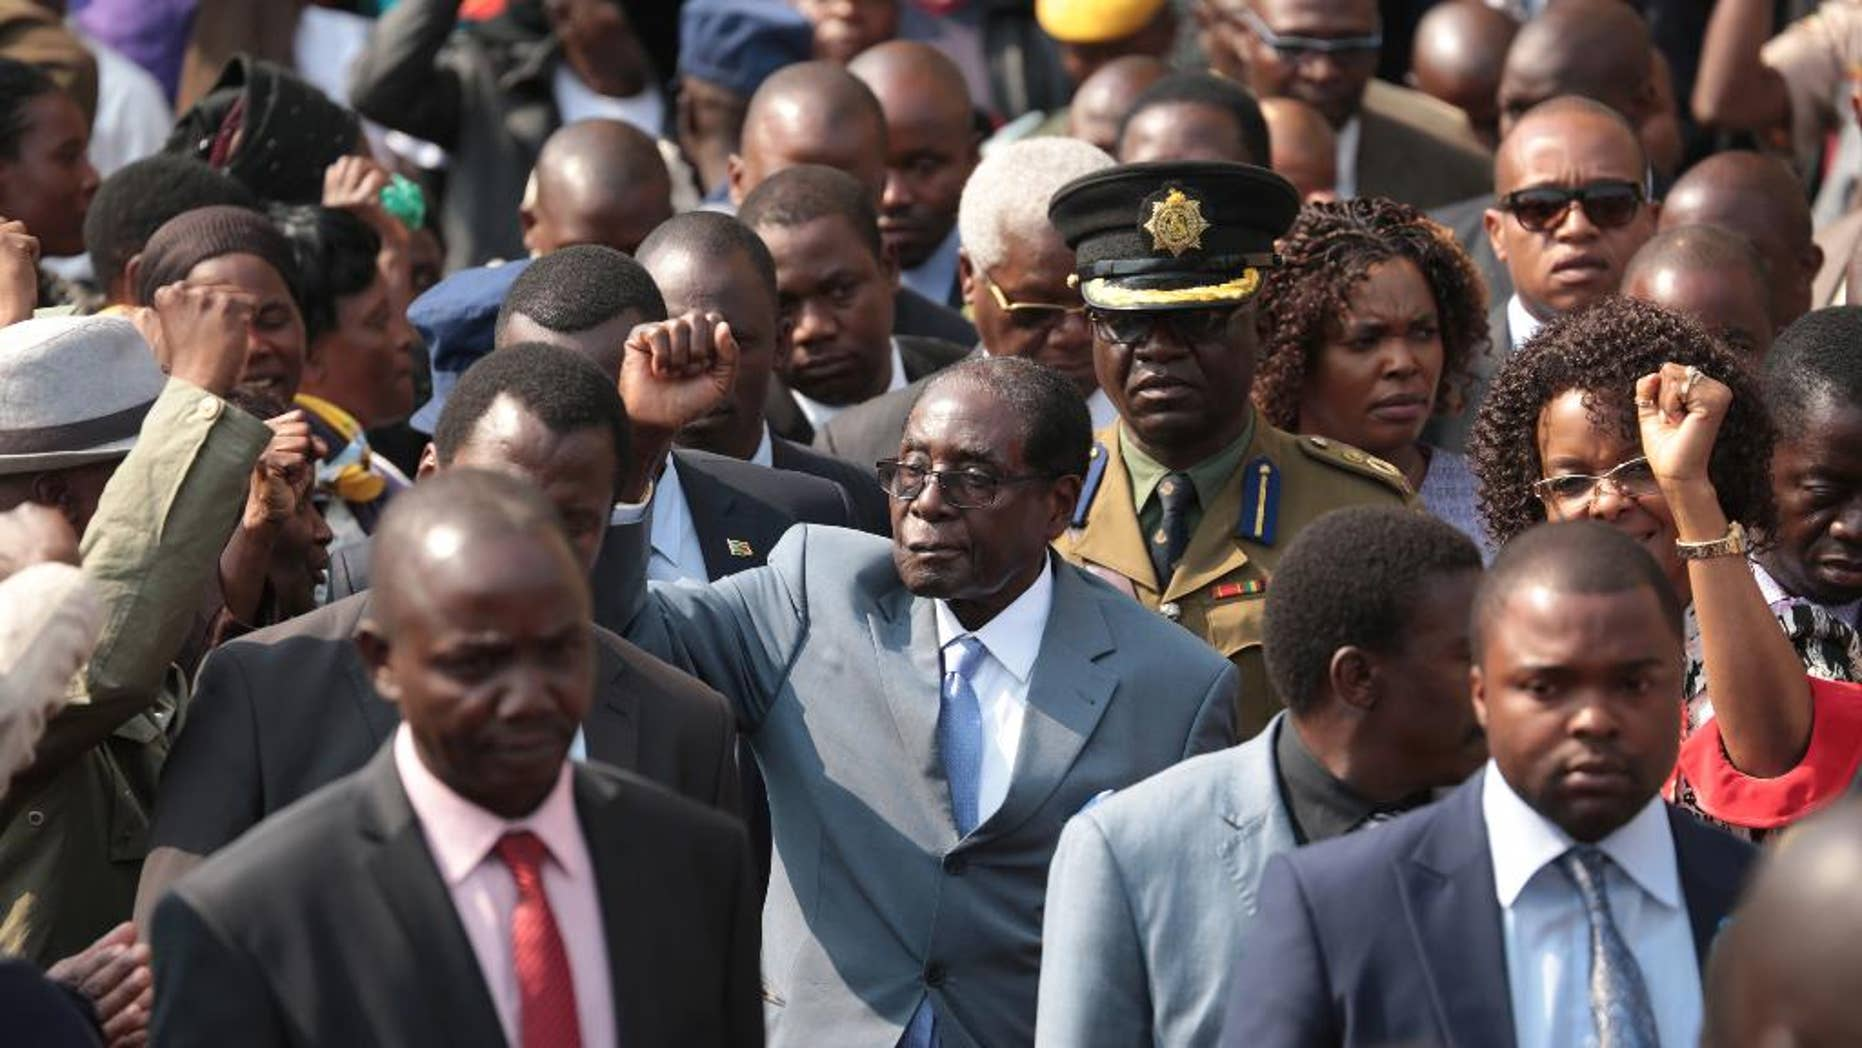 """Zimbabwean President Robert Mugabe, centre, gestures after addressing members of the Zimbabwe National Liberation War Veterans Association, at the party headquarters, in Harare, Wednesday, July, 27, 2016. Zimbabwe's 92-year-old president on Wednesday said the longtime loyalists who turned against him last week should face """"severe"""" punishment, and he vowed to stay in power for """"a long time."""" (AP Photo/Tsvangirayi Mukwazhi)"""